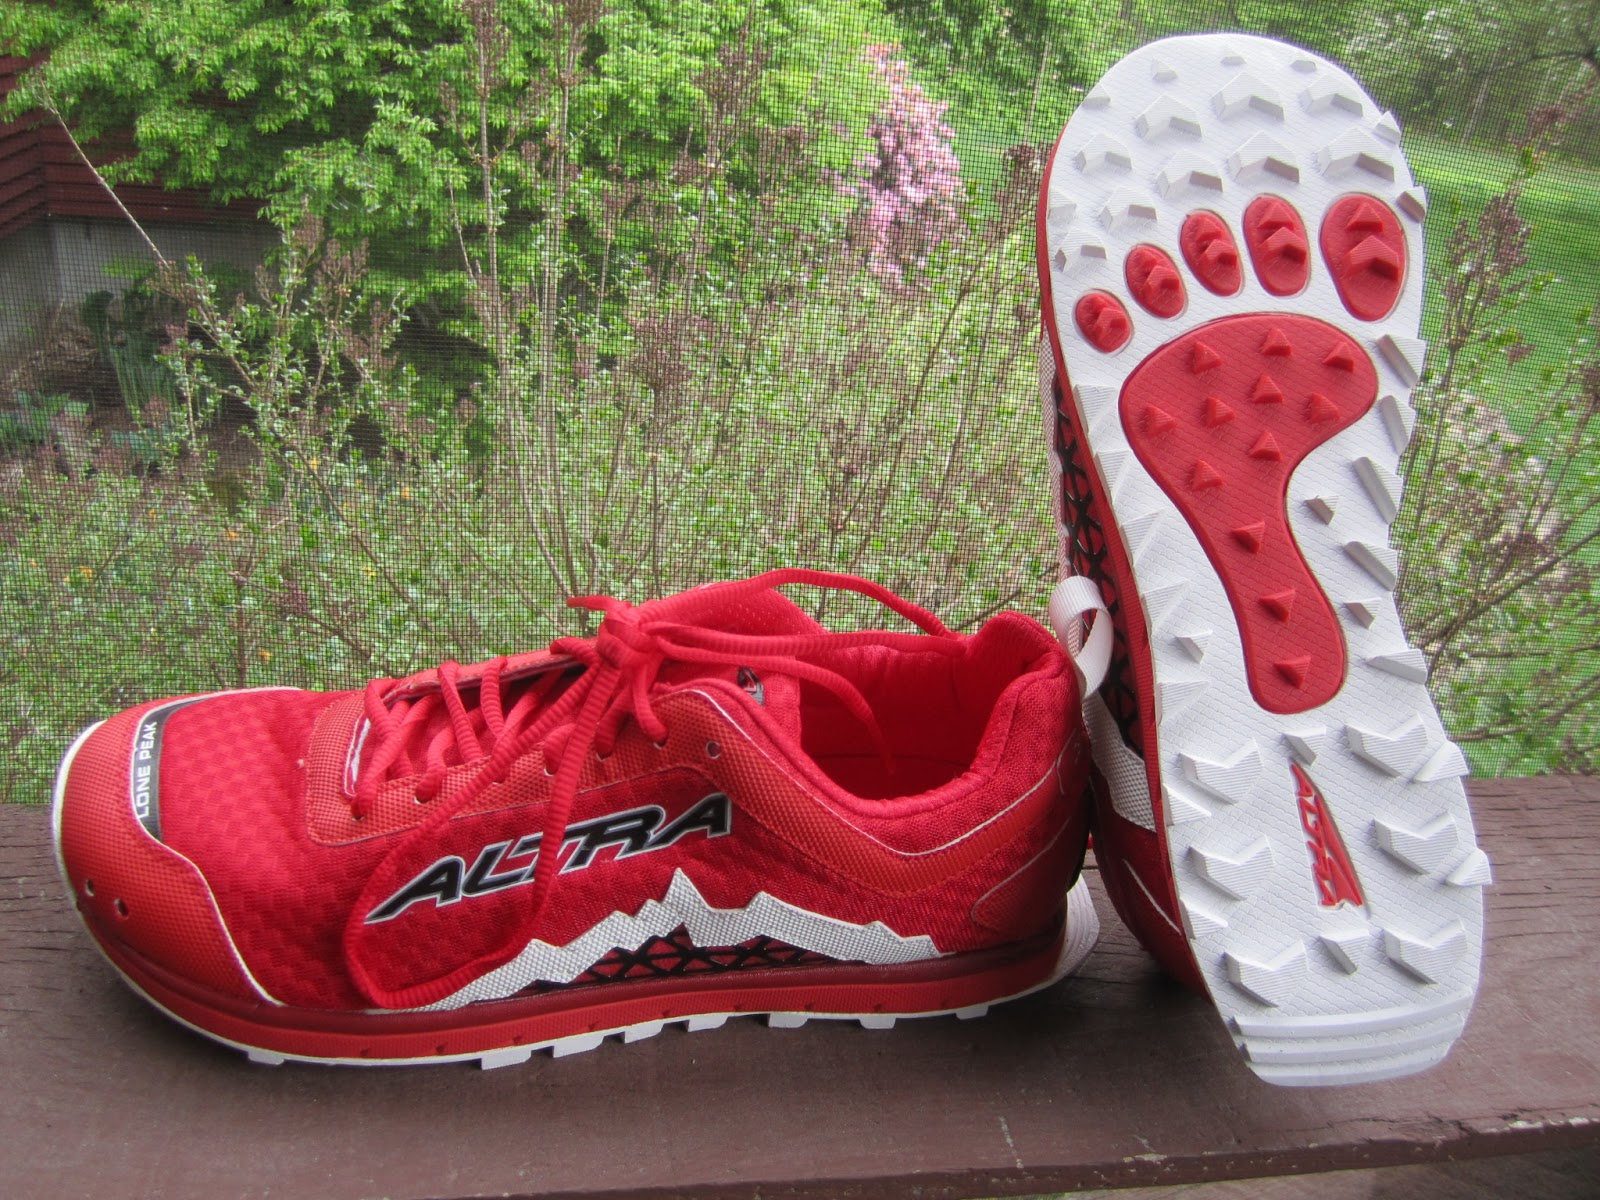 9ba9cb8c48 Dirty Runner  Altra Lone Peak 1.5 Review